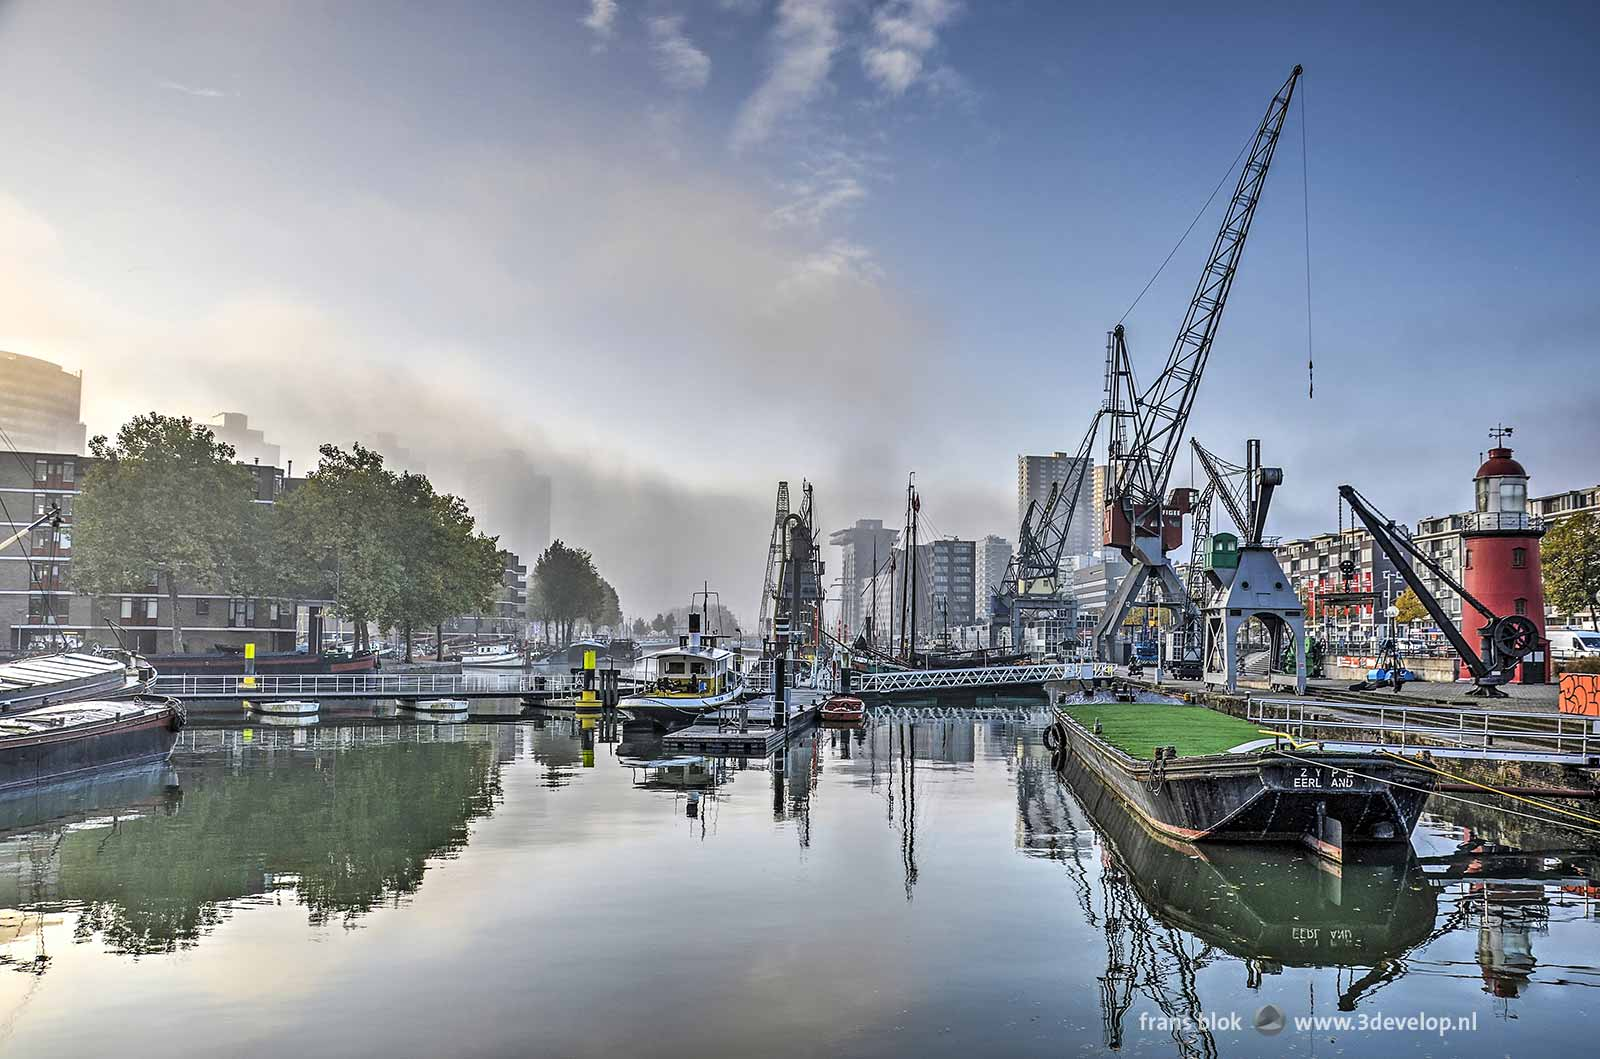 View from the quay near Maritime Museum in Rotterdam to a large volume of mist above the river Nieuwe Maas